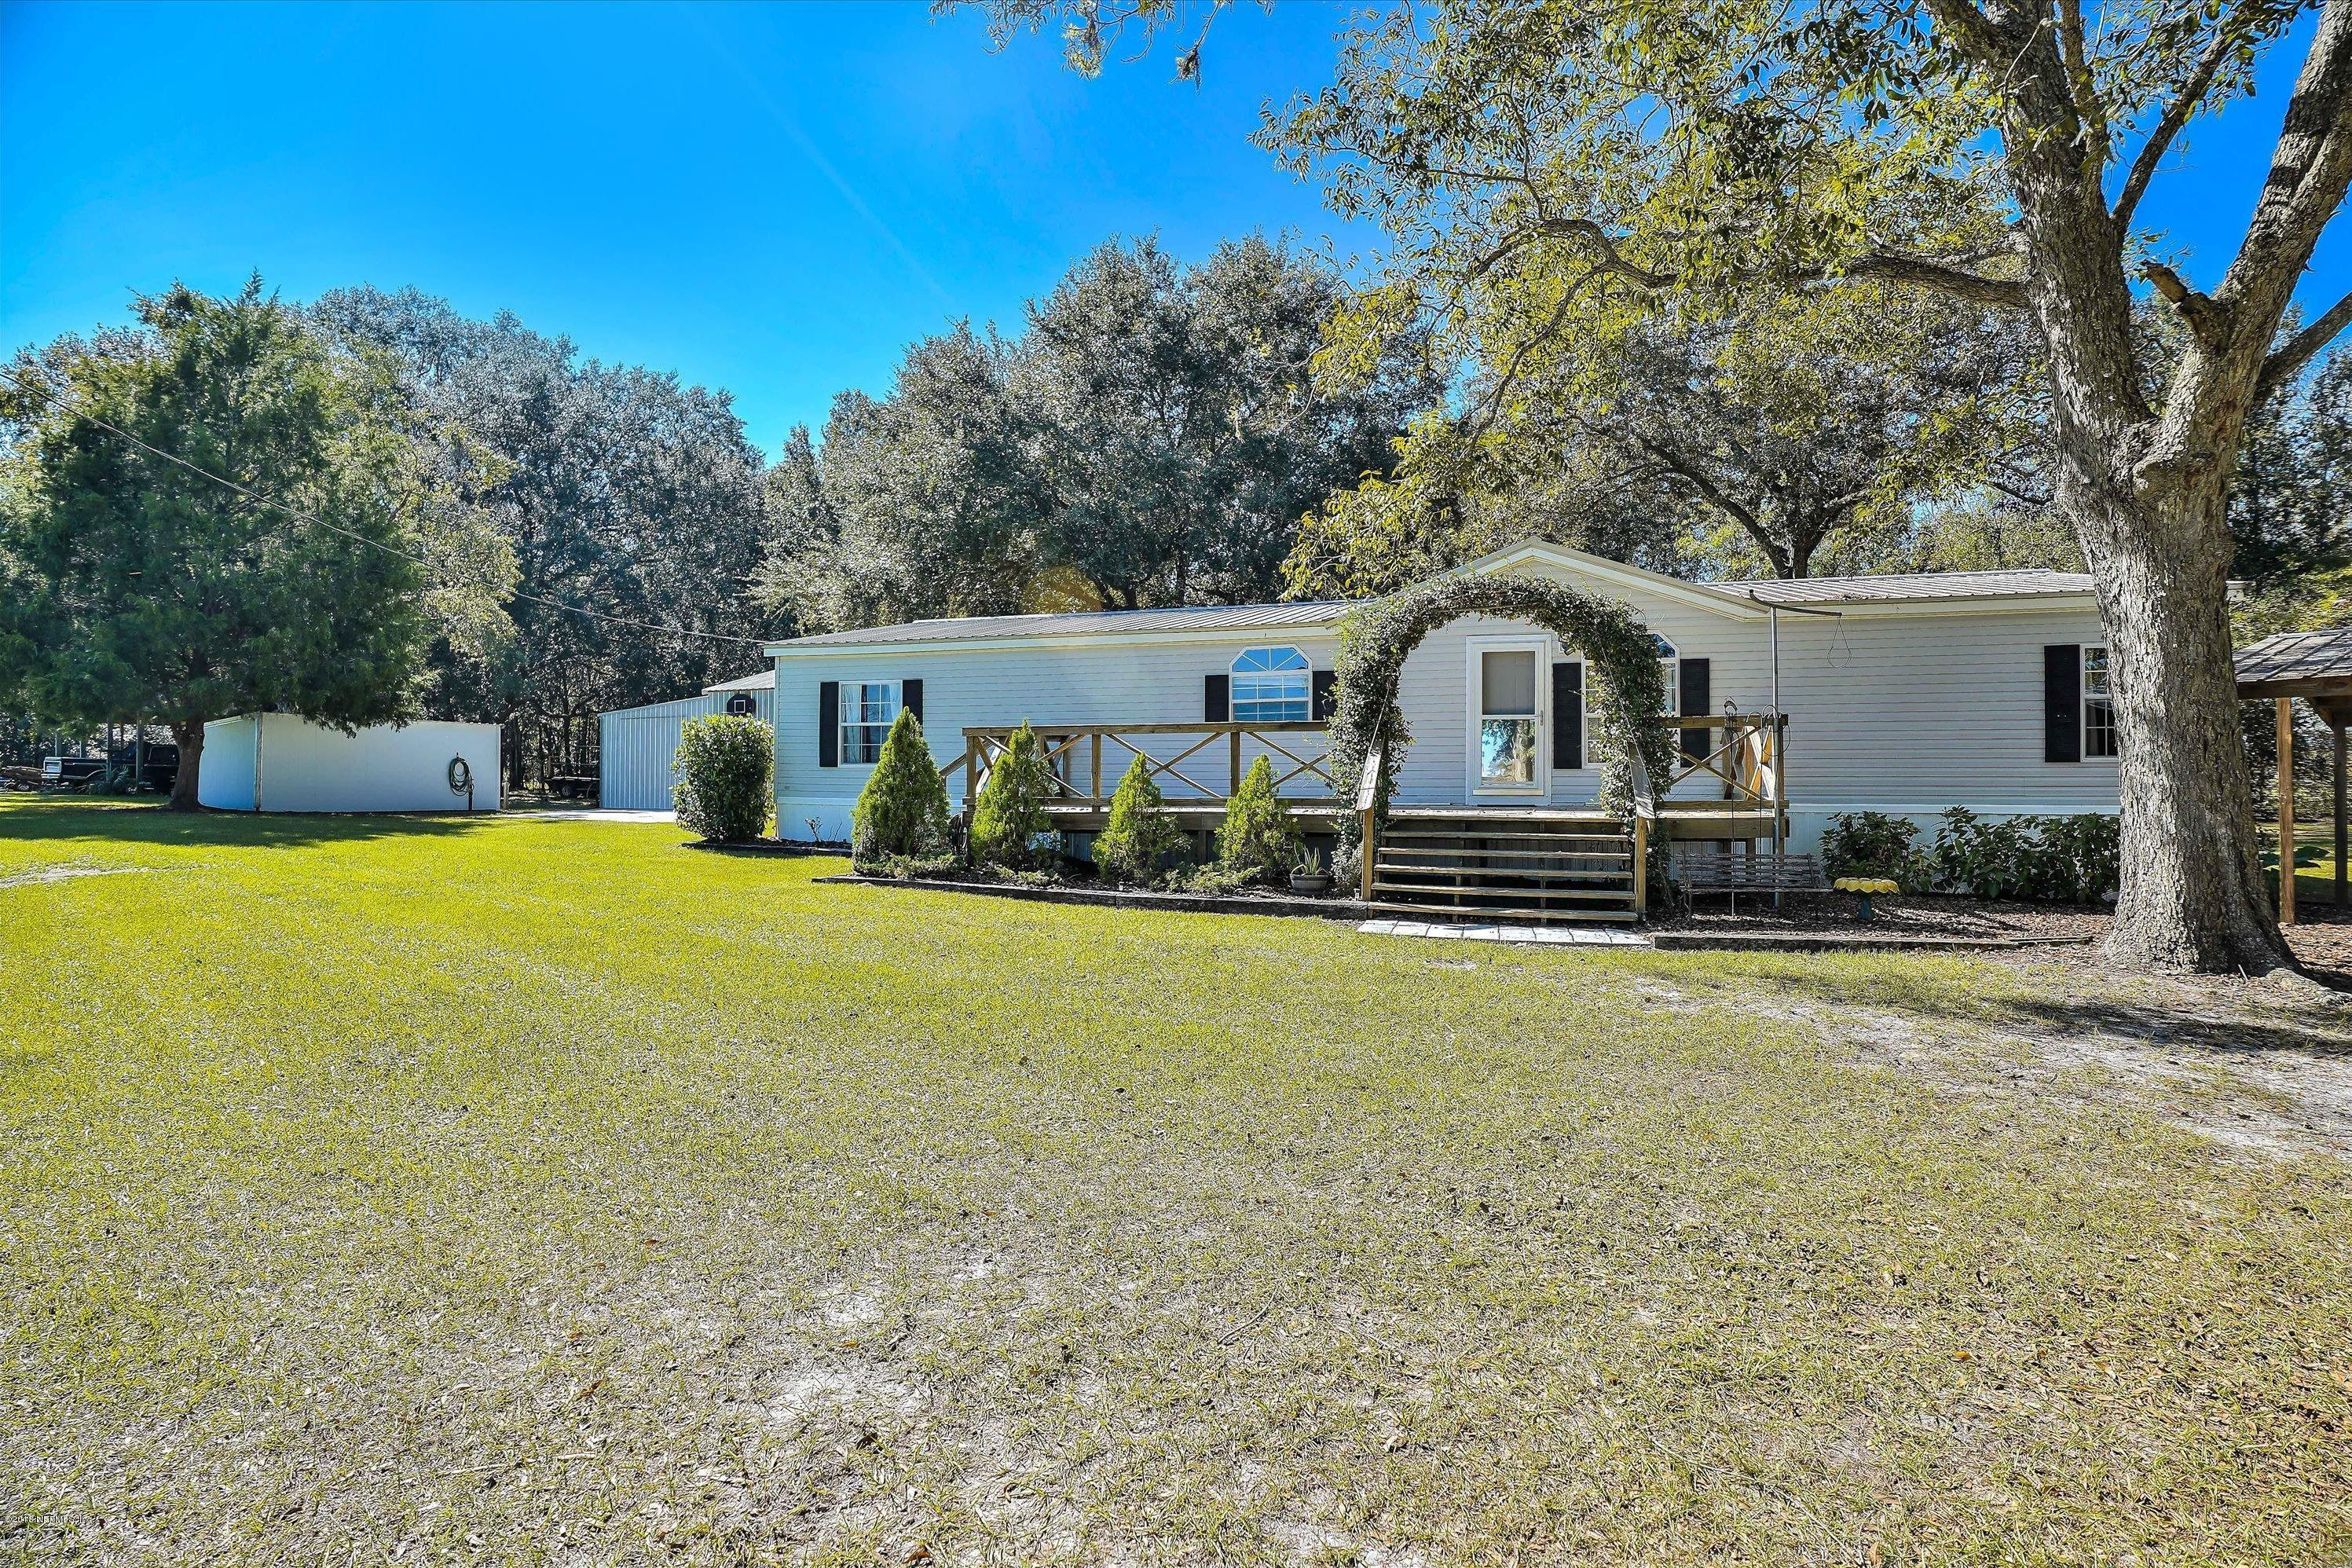 17172 44TH, LIVE OAK, FLORIDA 32060, 3 Bedrooms Bedrooms, ,2 BathroomsBathrooms,Residential - mobile home,For sale,44TH,964985